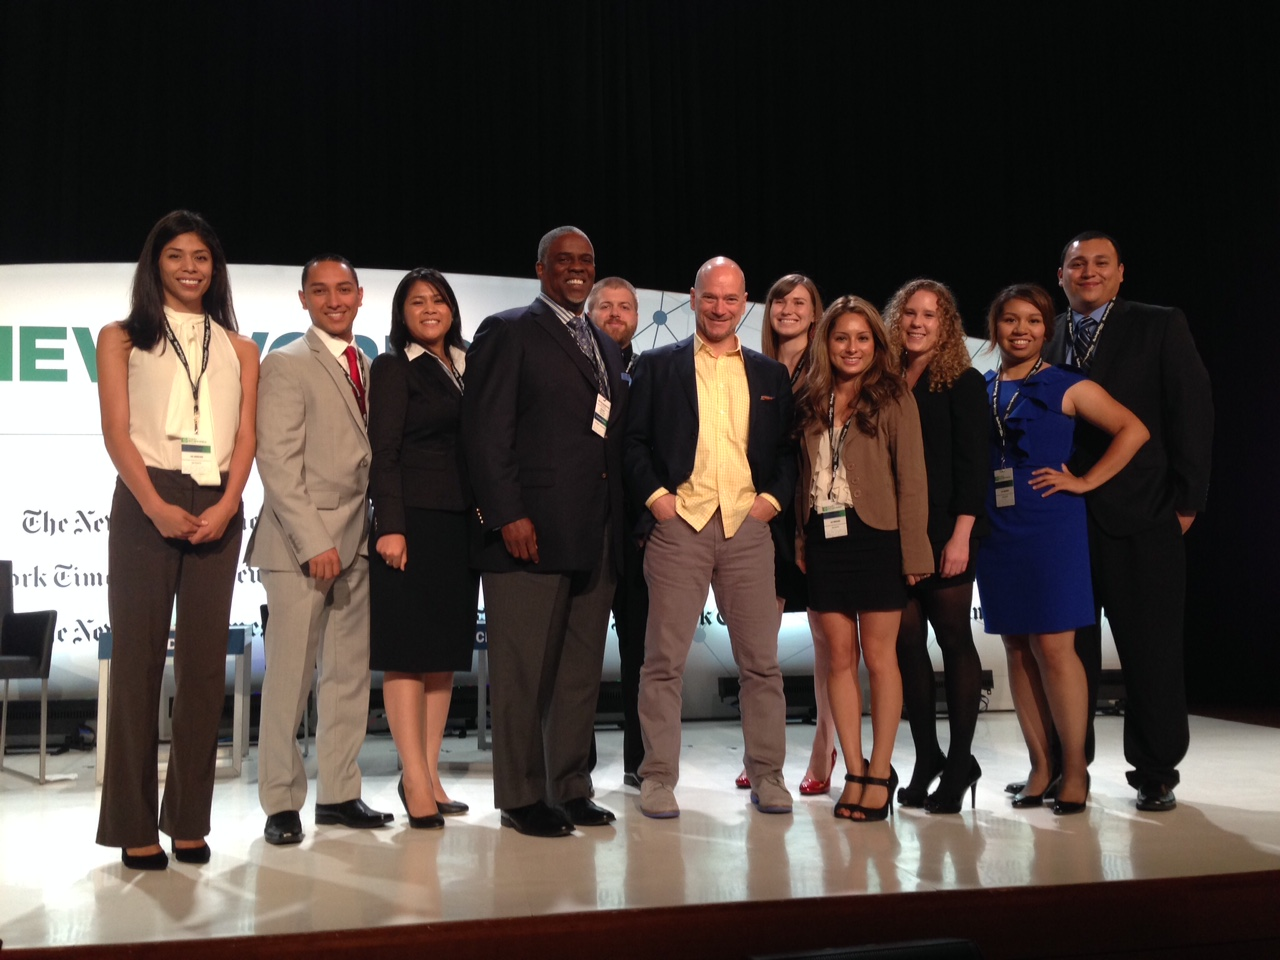 Professor Mark T. Harris, Esq. and UC Merced Students with Andrew McAfee